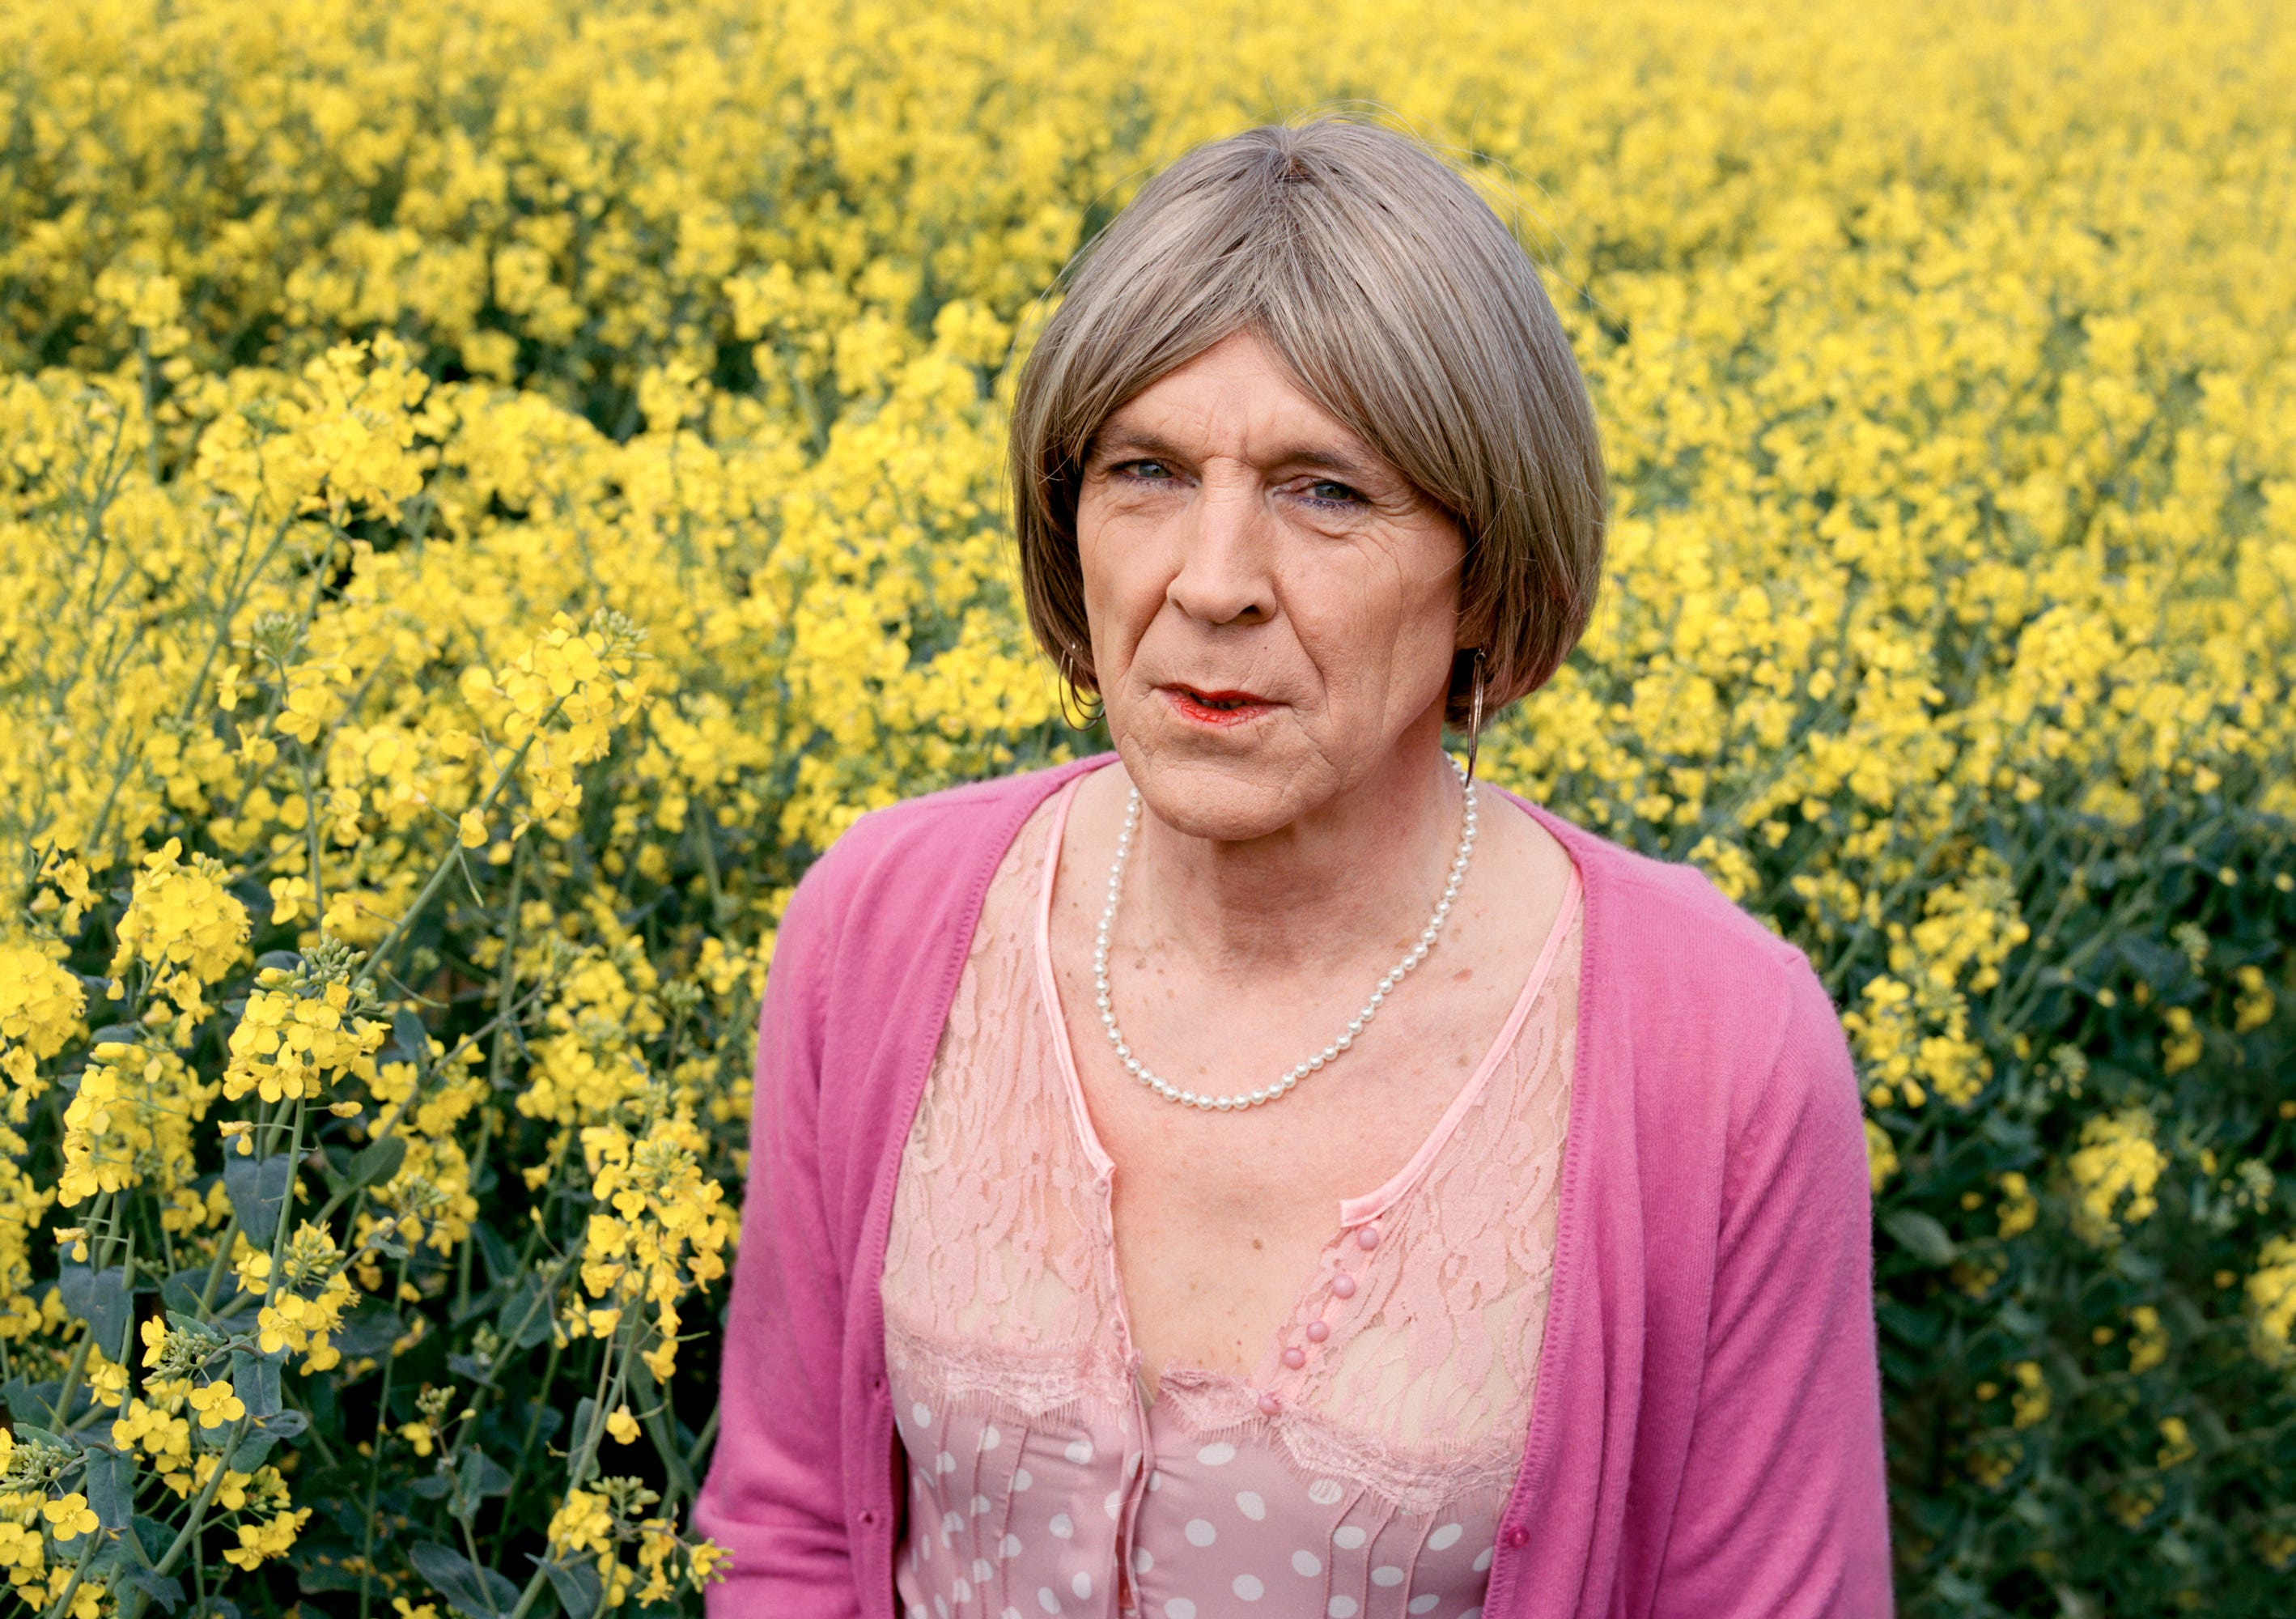 Intimate Portraits Of The Over 40s In The Transgender Community